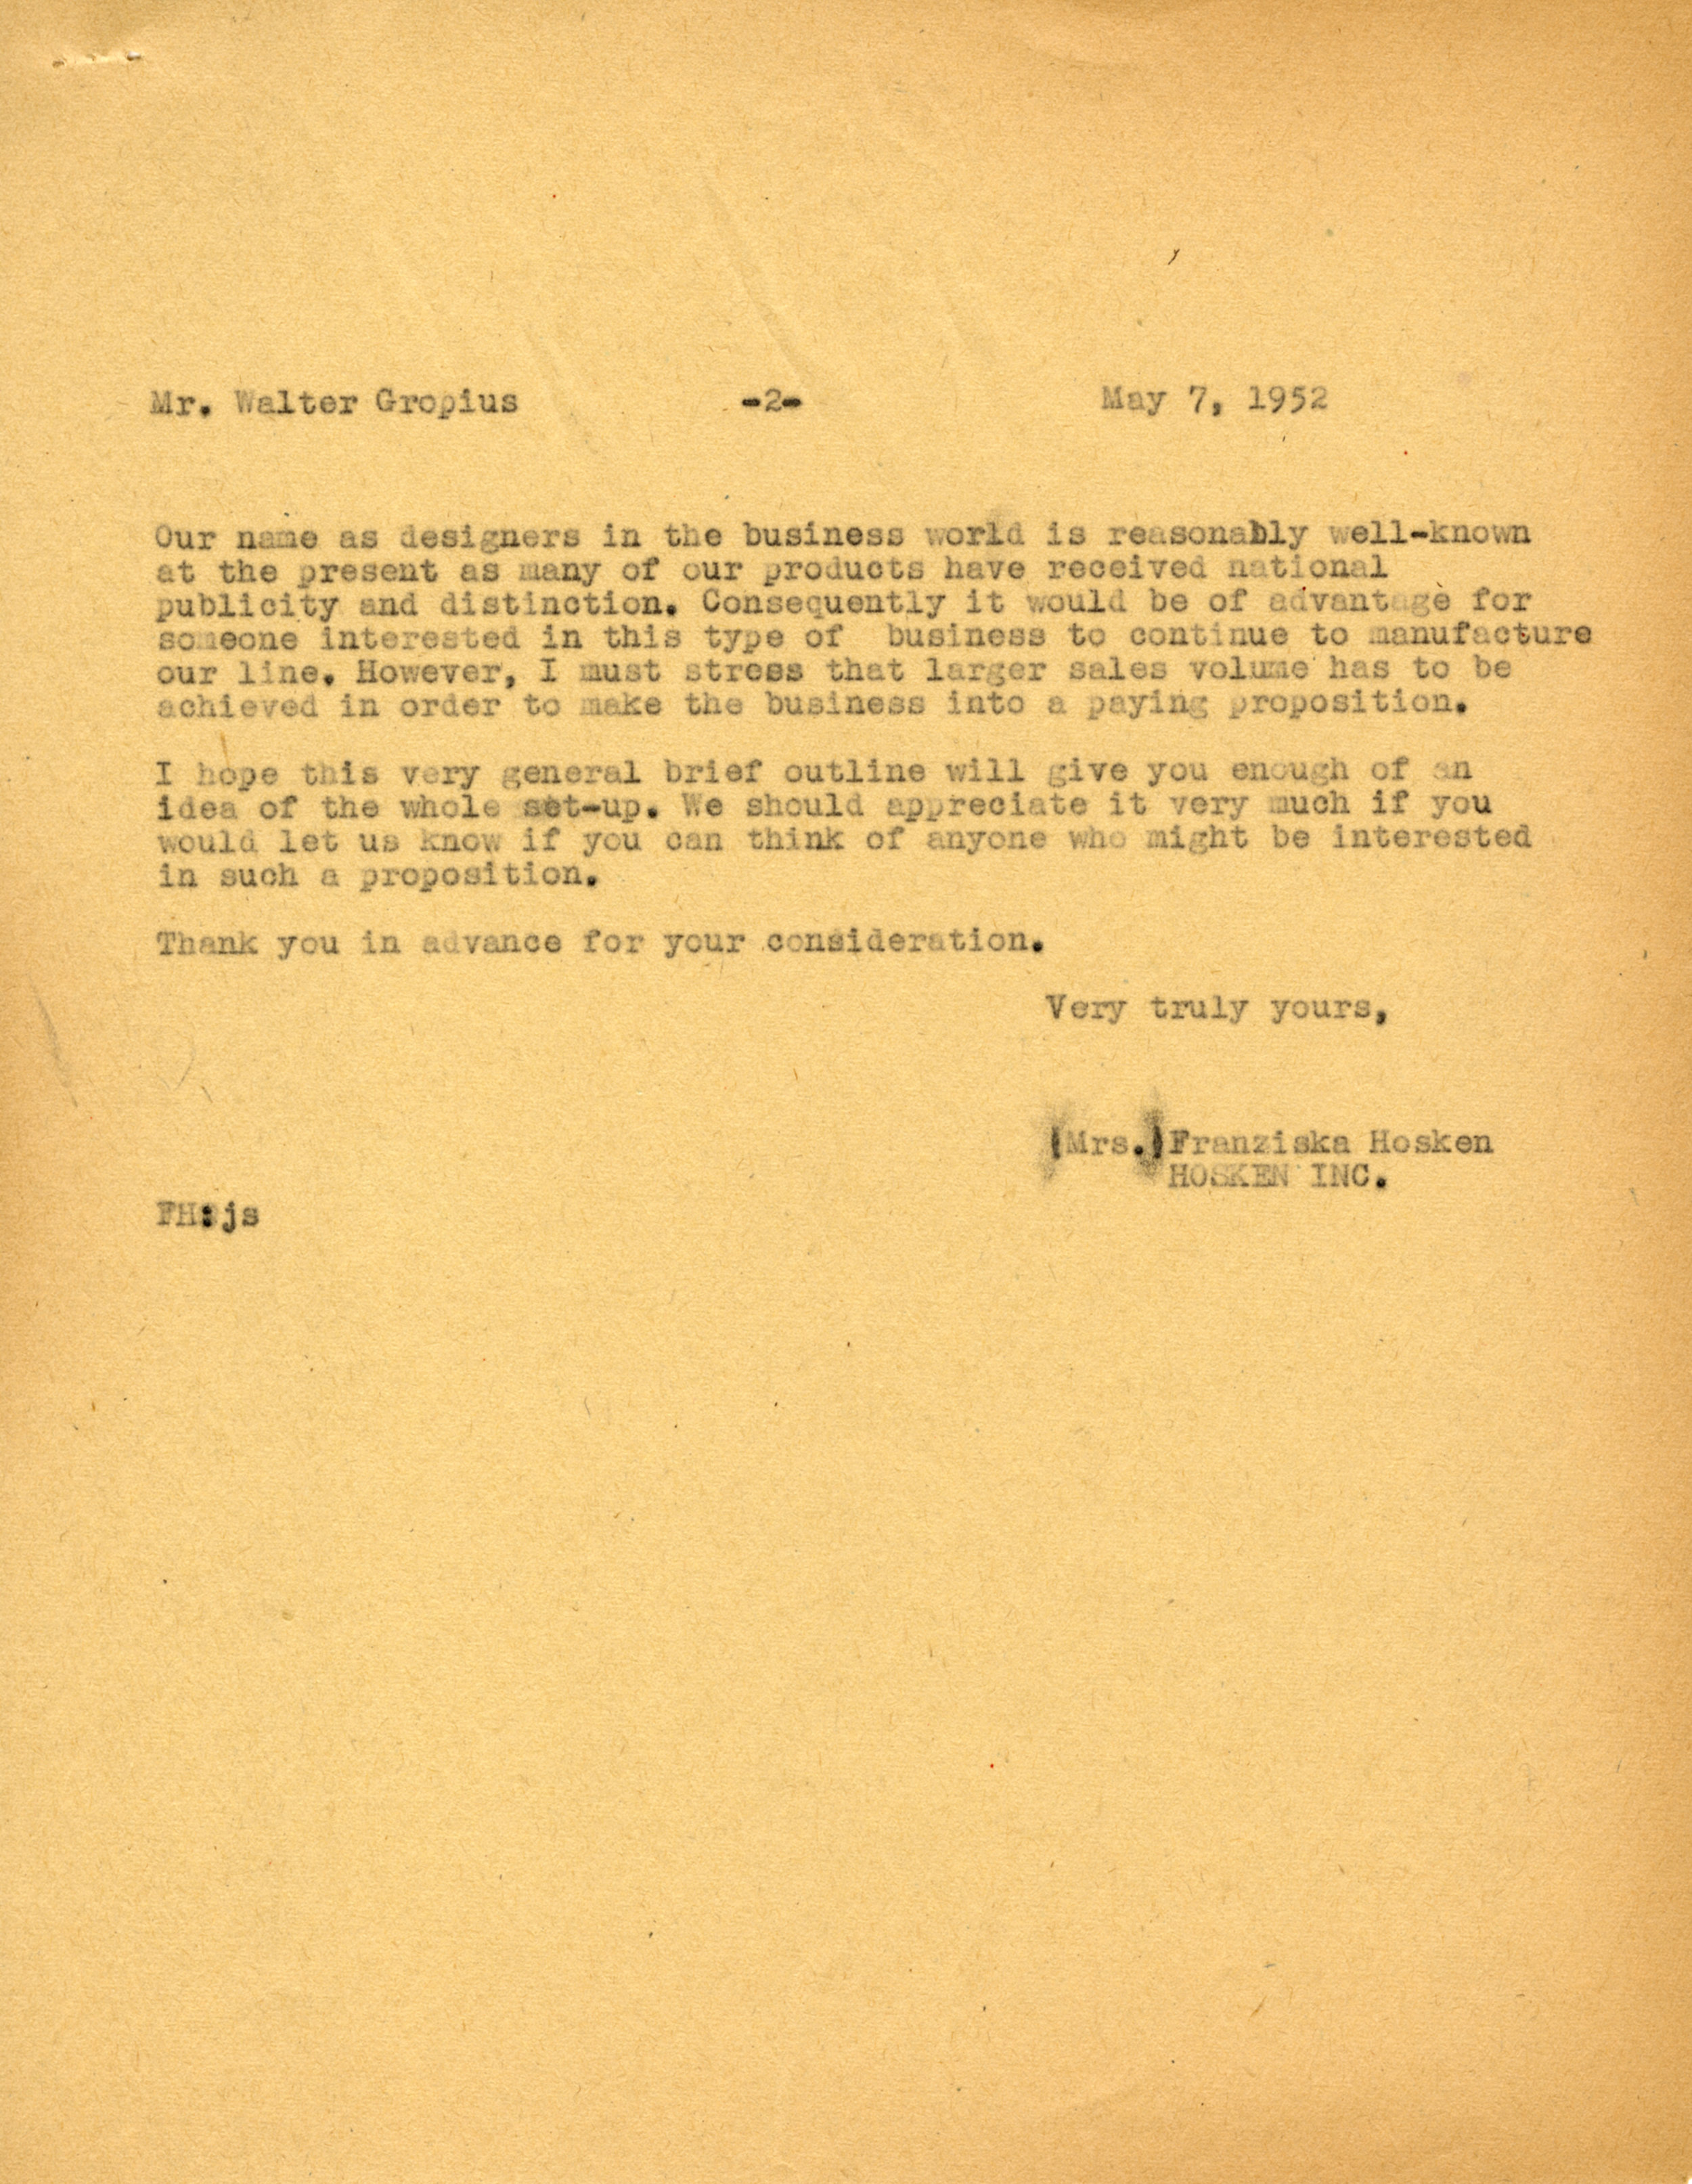 Correspondence between Fran Hosken and Walter Gropius, May 7, 1952. Frances Loeb Library Special Collections, Harvard Graduate School of Design.